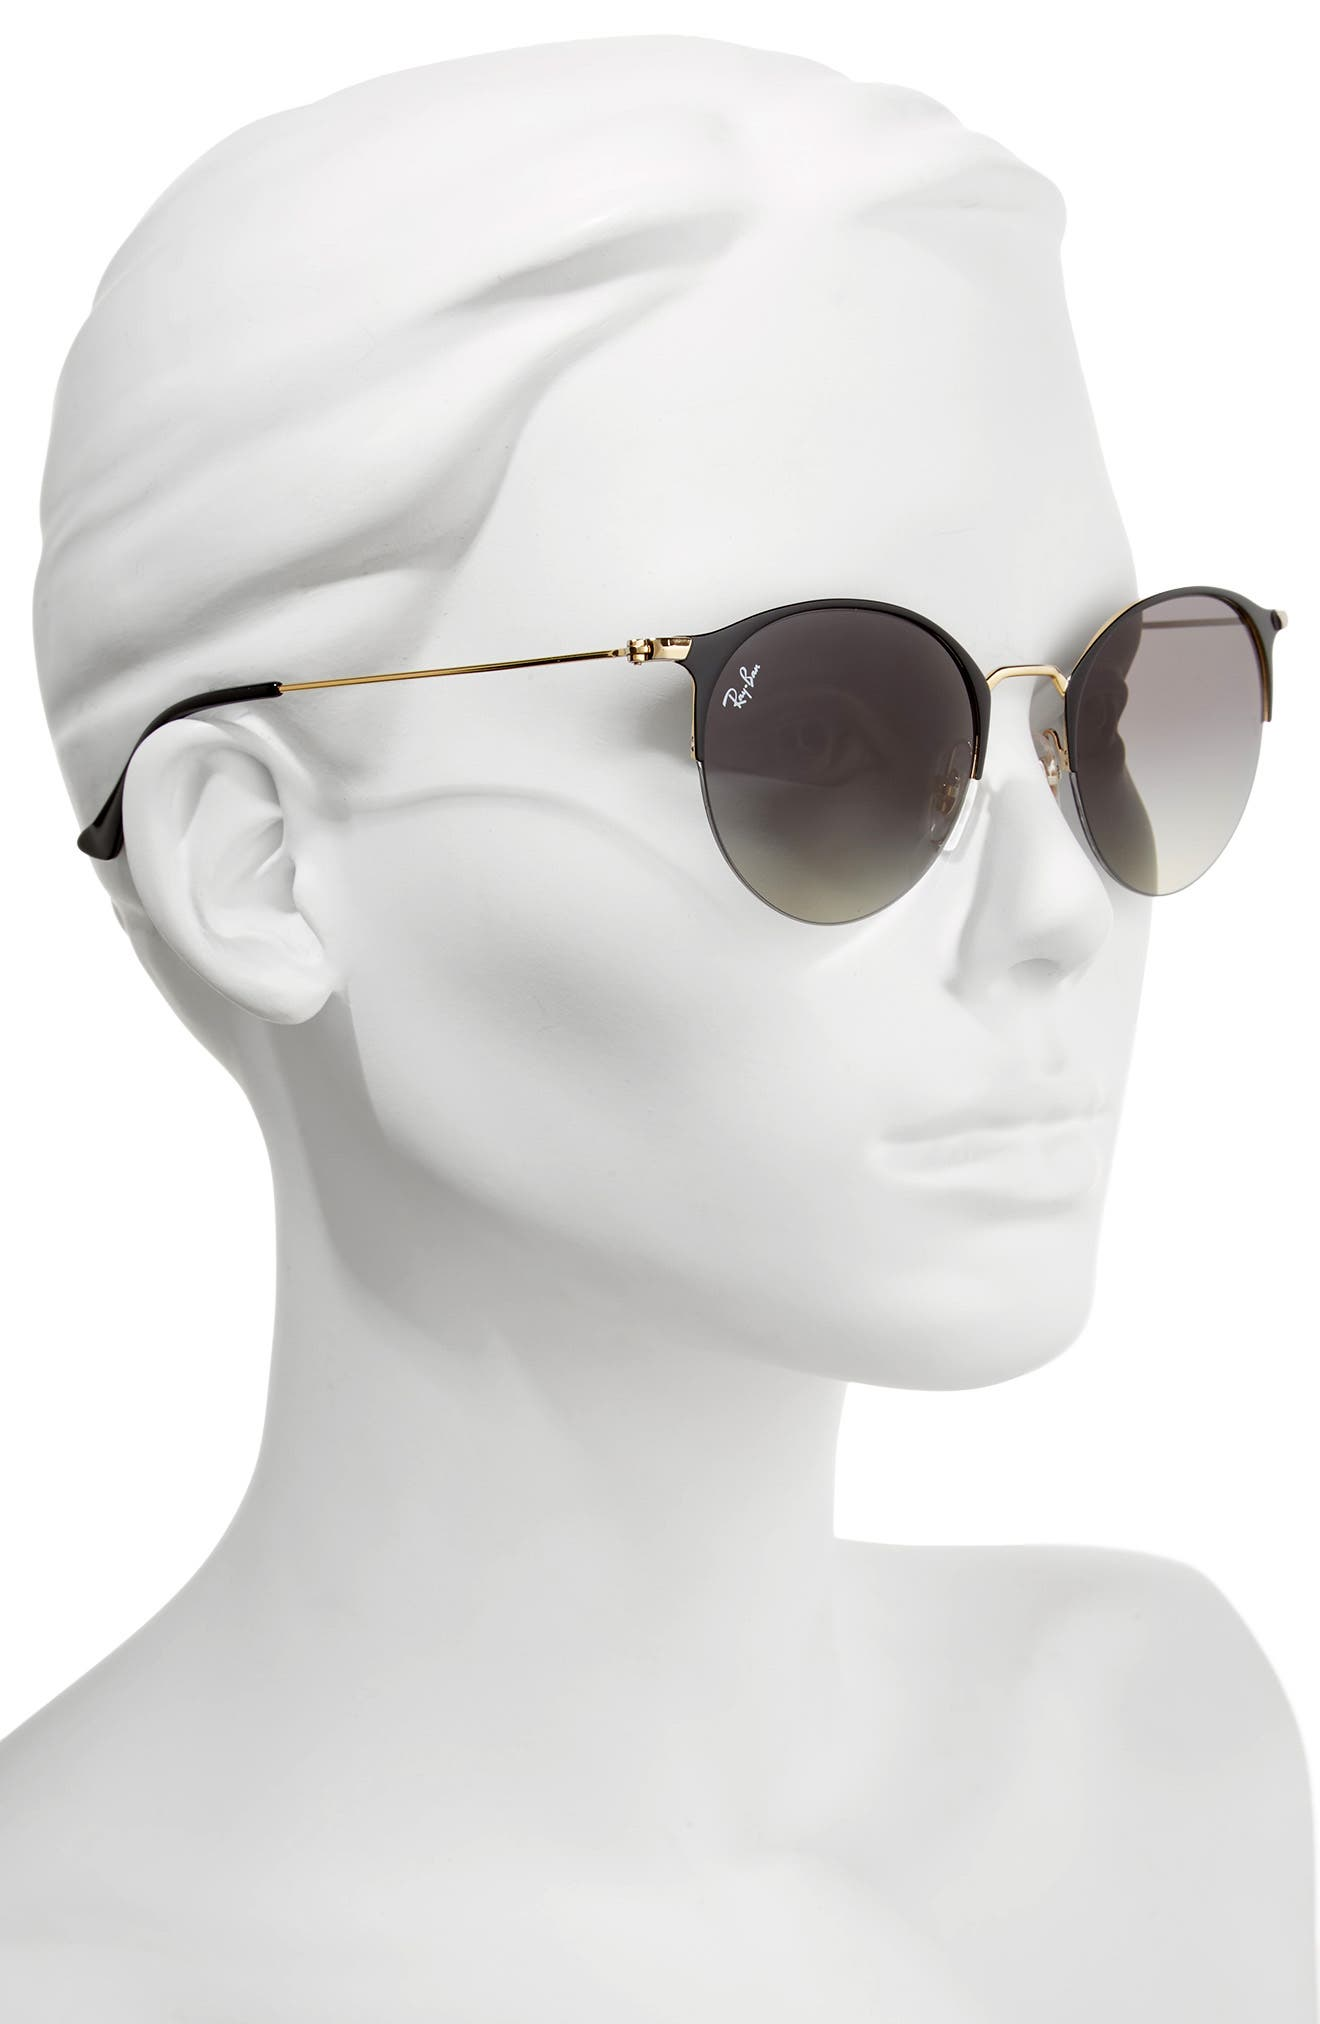 50mm Round Clubmaster Sunglasses,                             Alternate thumbnail 2, color,                             Gold/ Black